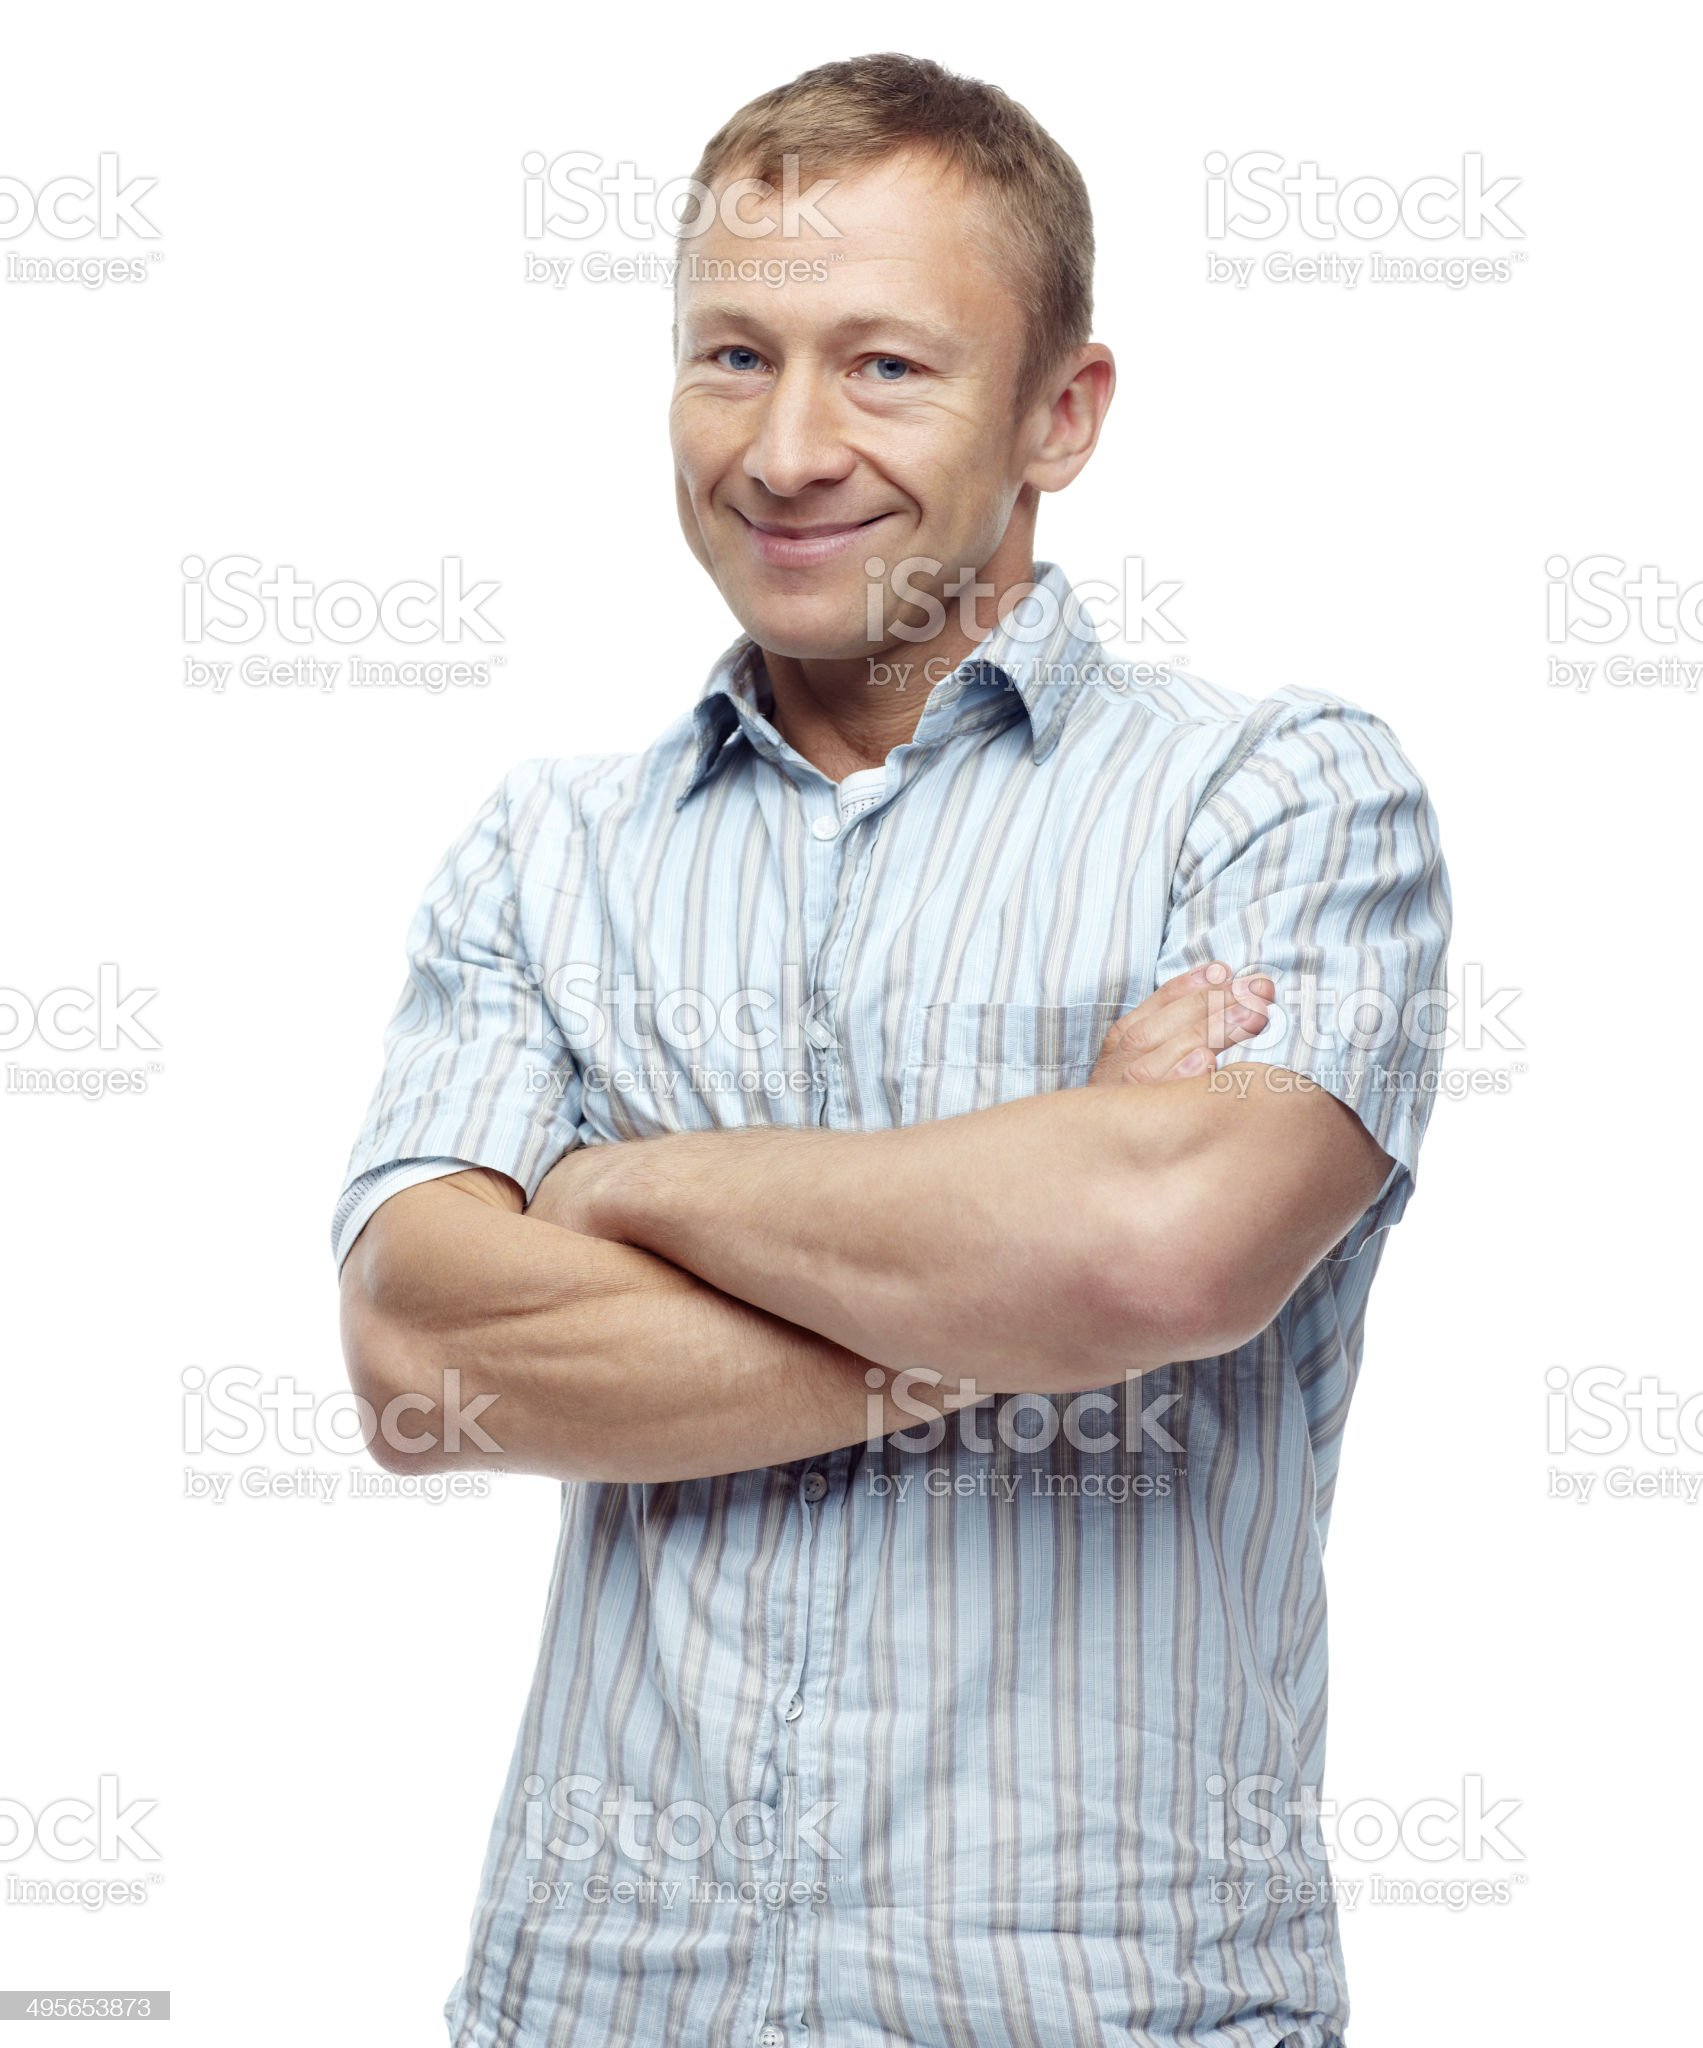 Mischievous smile - wonder what he's up to? royalty-free stock photo